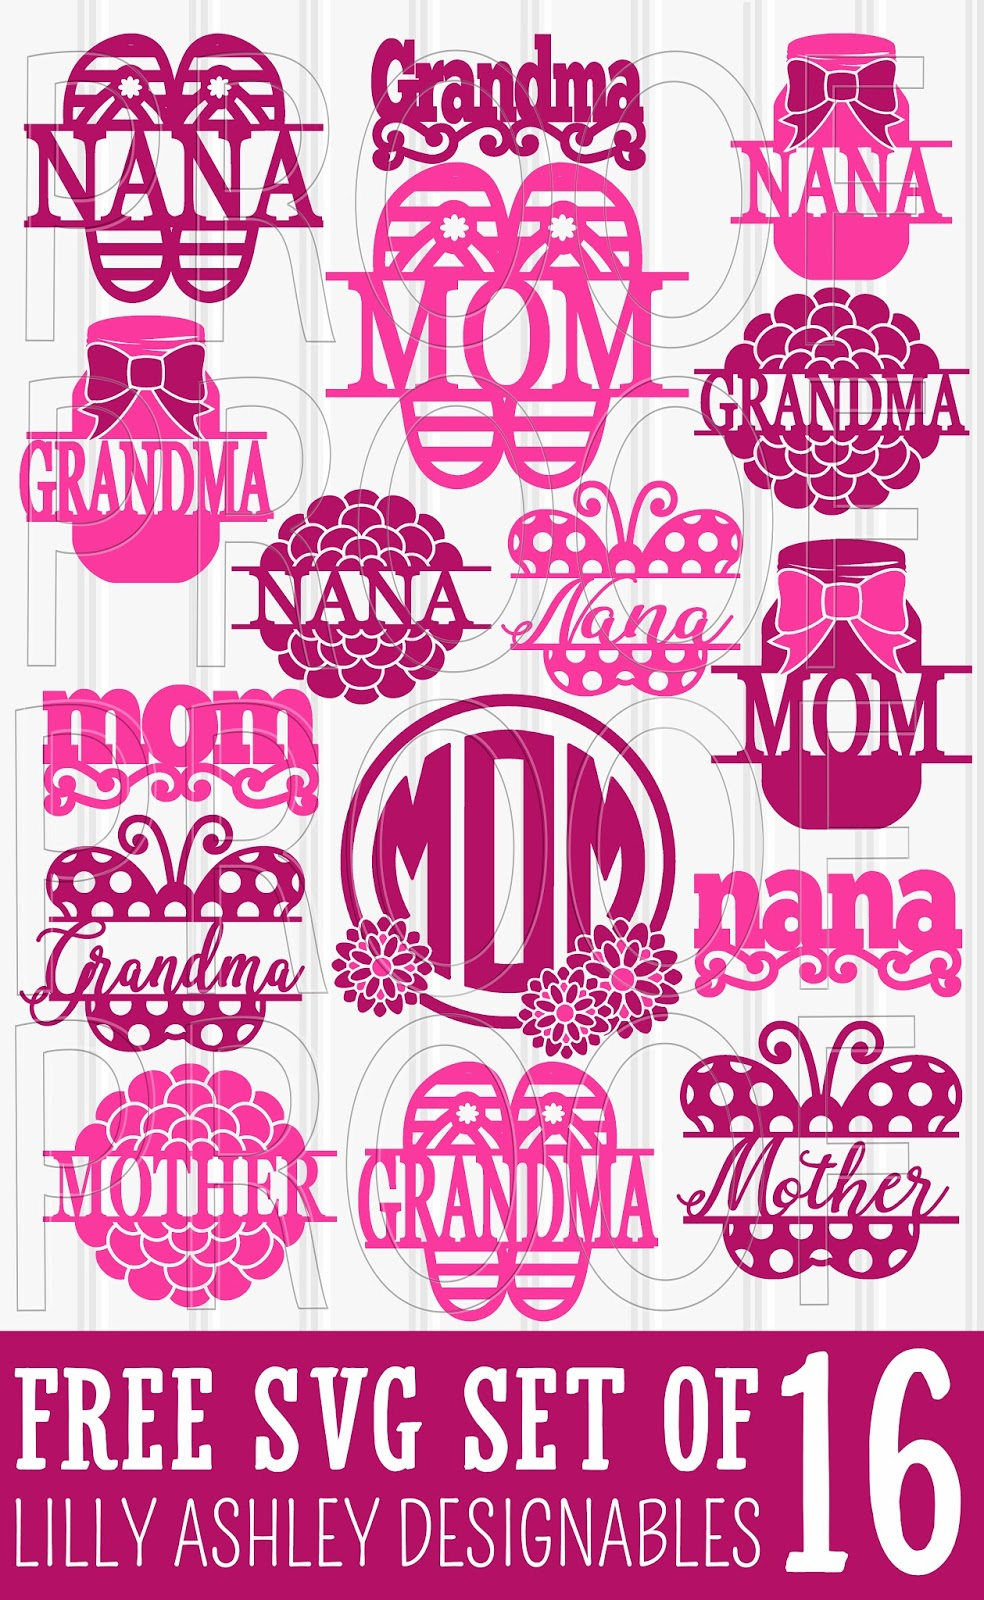 Free Choose from 3600+ mothers day graphic resources and download in the form of png, eps, ai or psd. Make It Create Free Cut Files And Printables Freebie Cut File Set Of 16 SVG, PNG, EPS, DXF File